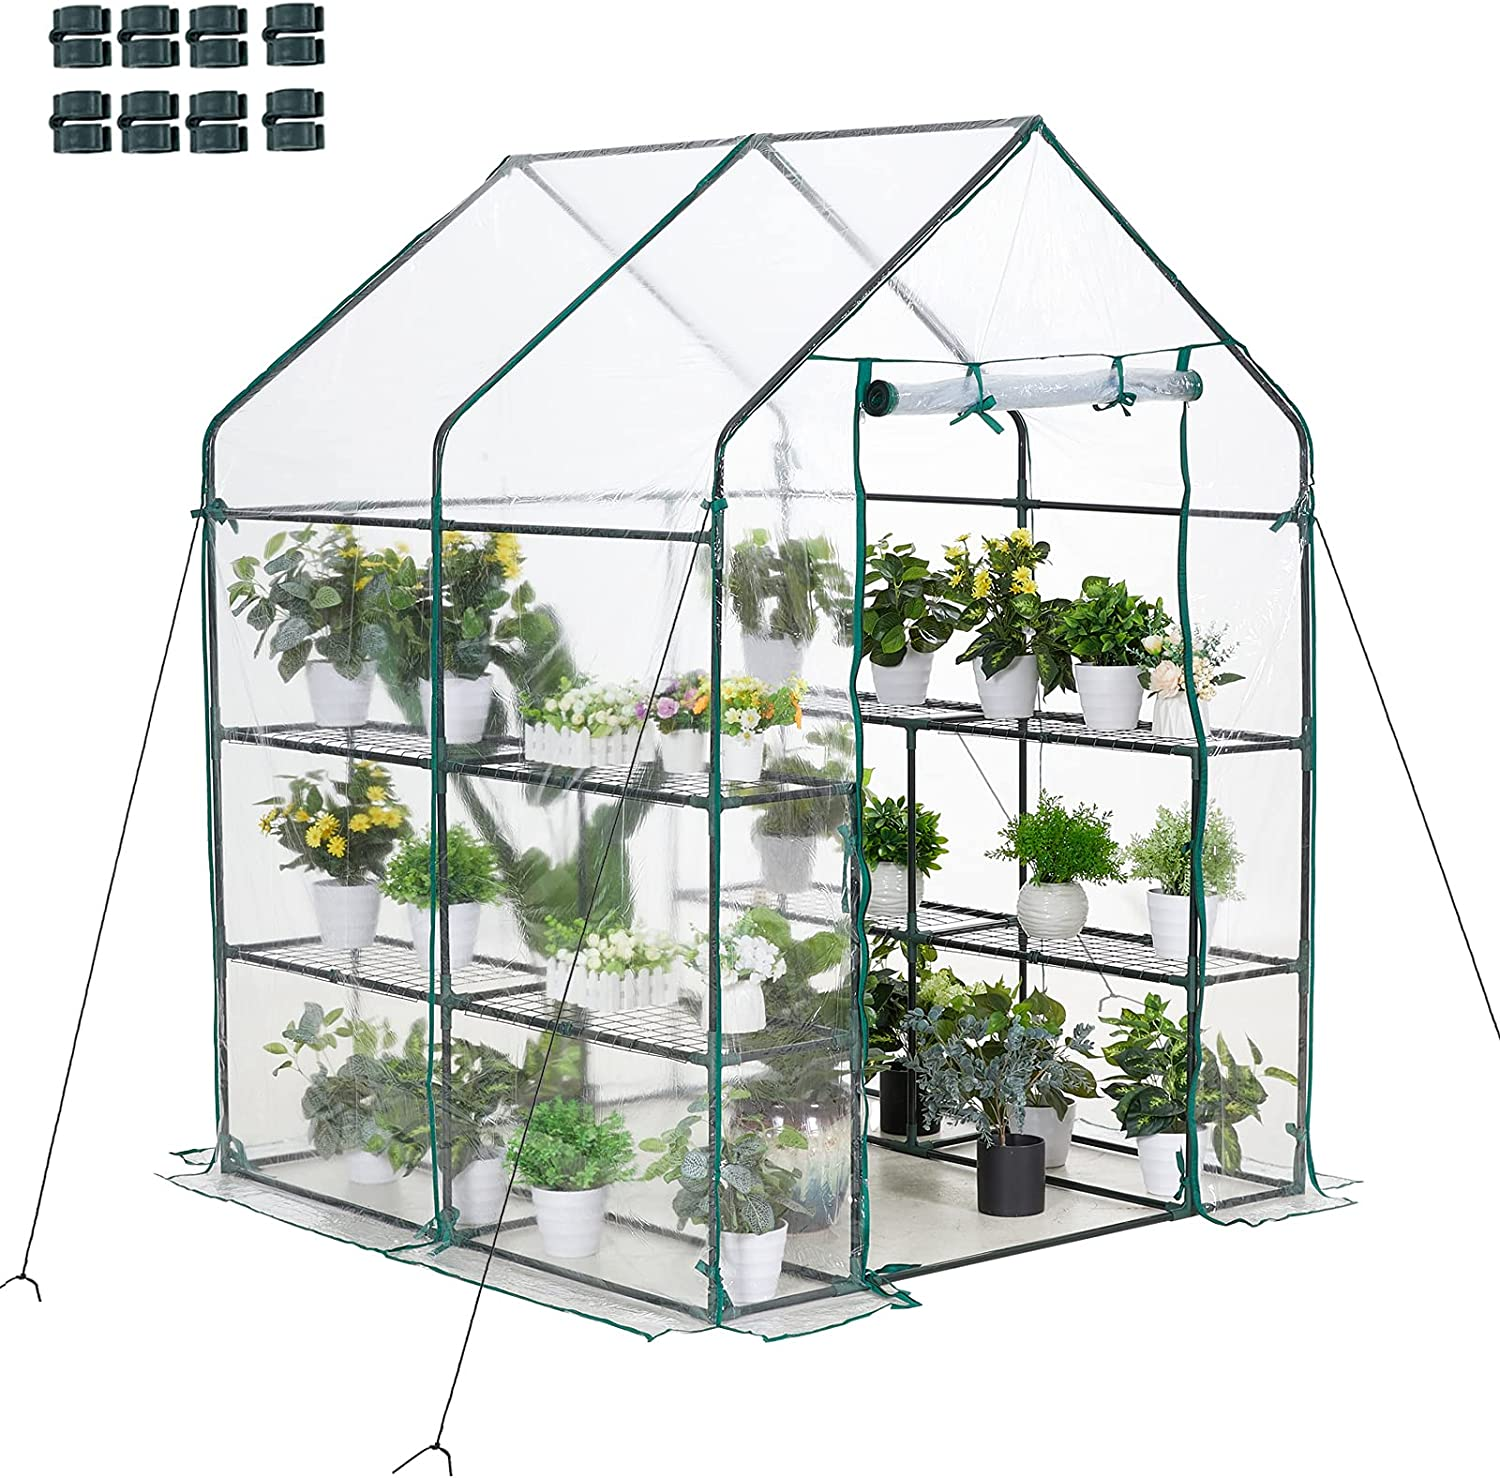 AMERLIFE Walk-in Greenhouse Hot House 77x56x56 Inch Indoor Outdoor 3 Tier 8 Shelves with PVC Cover and Roll-Up Zipper Door Extra 4 Hooks and Wind Ropes 8 Net Rack Buckles